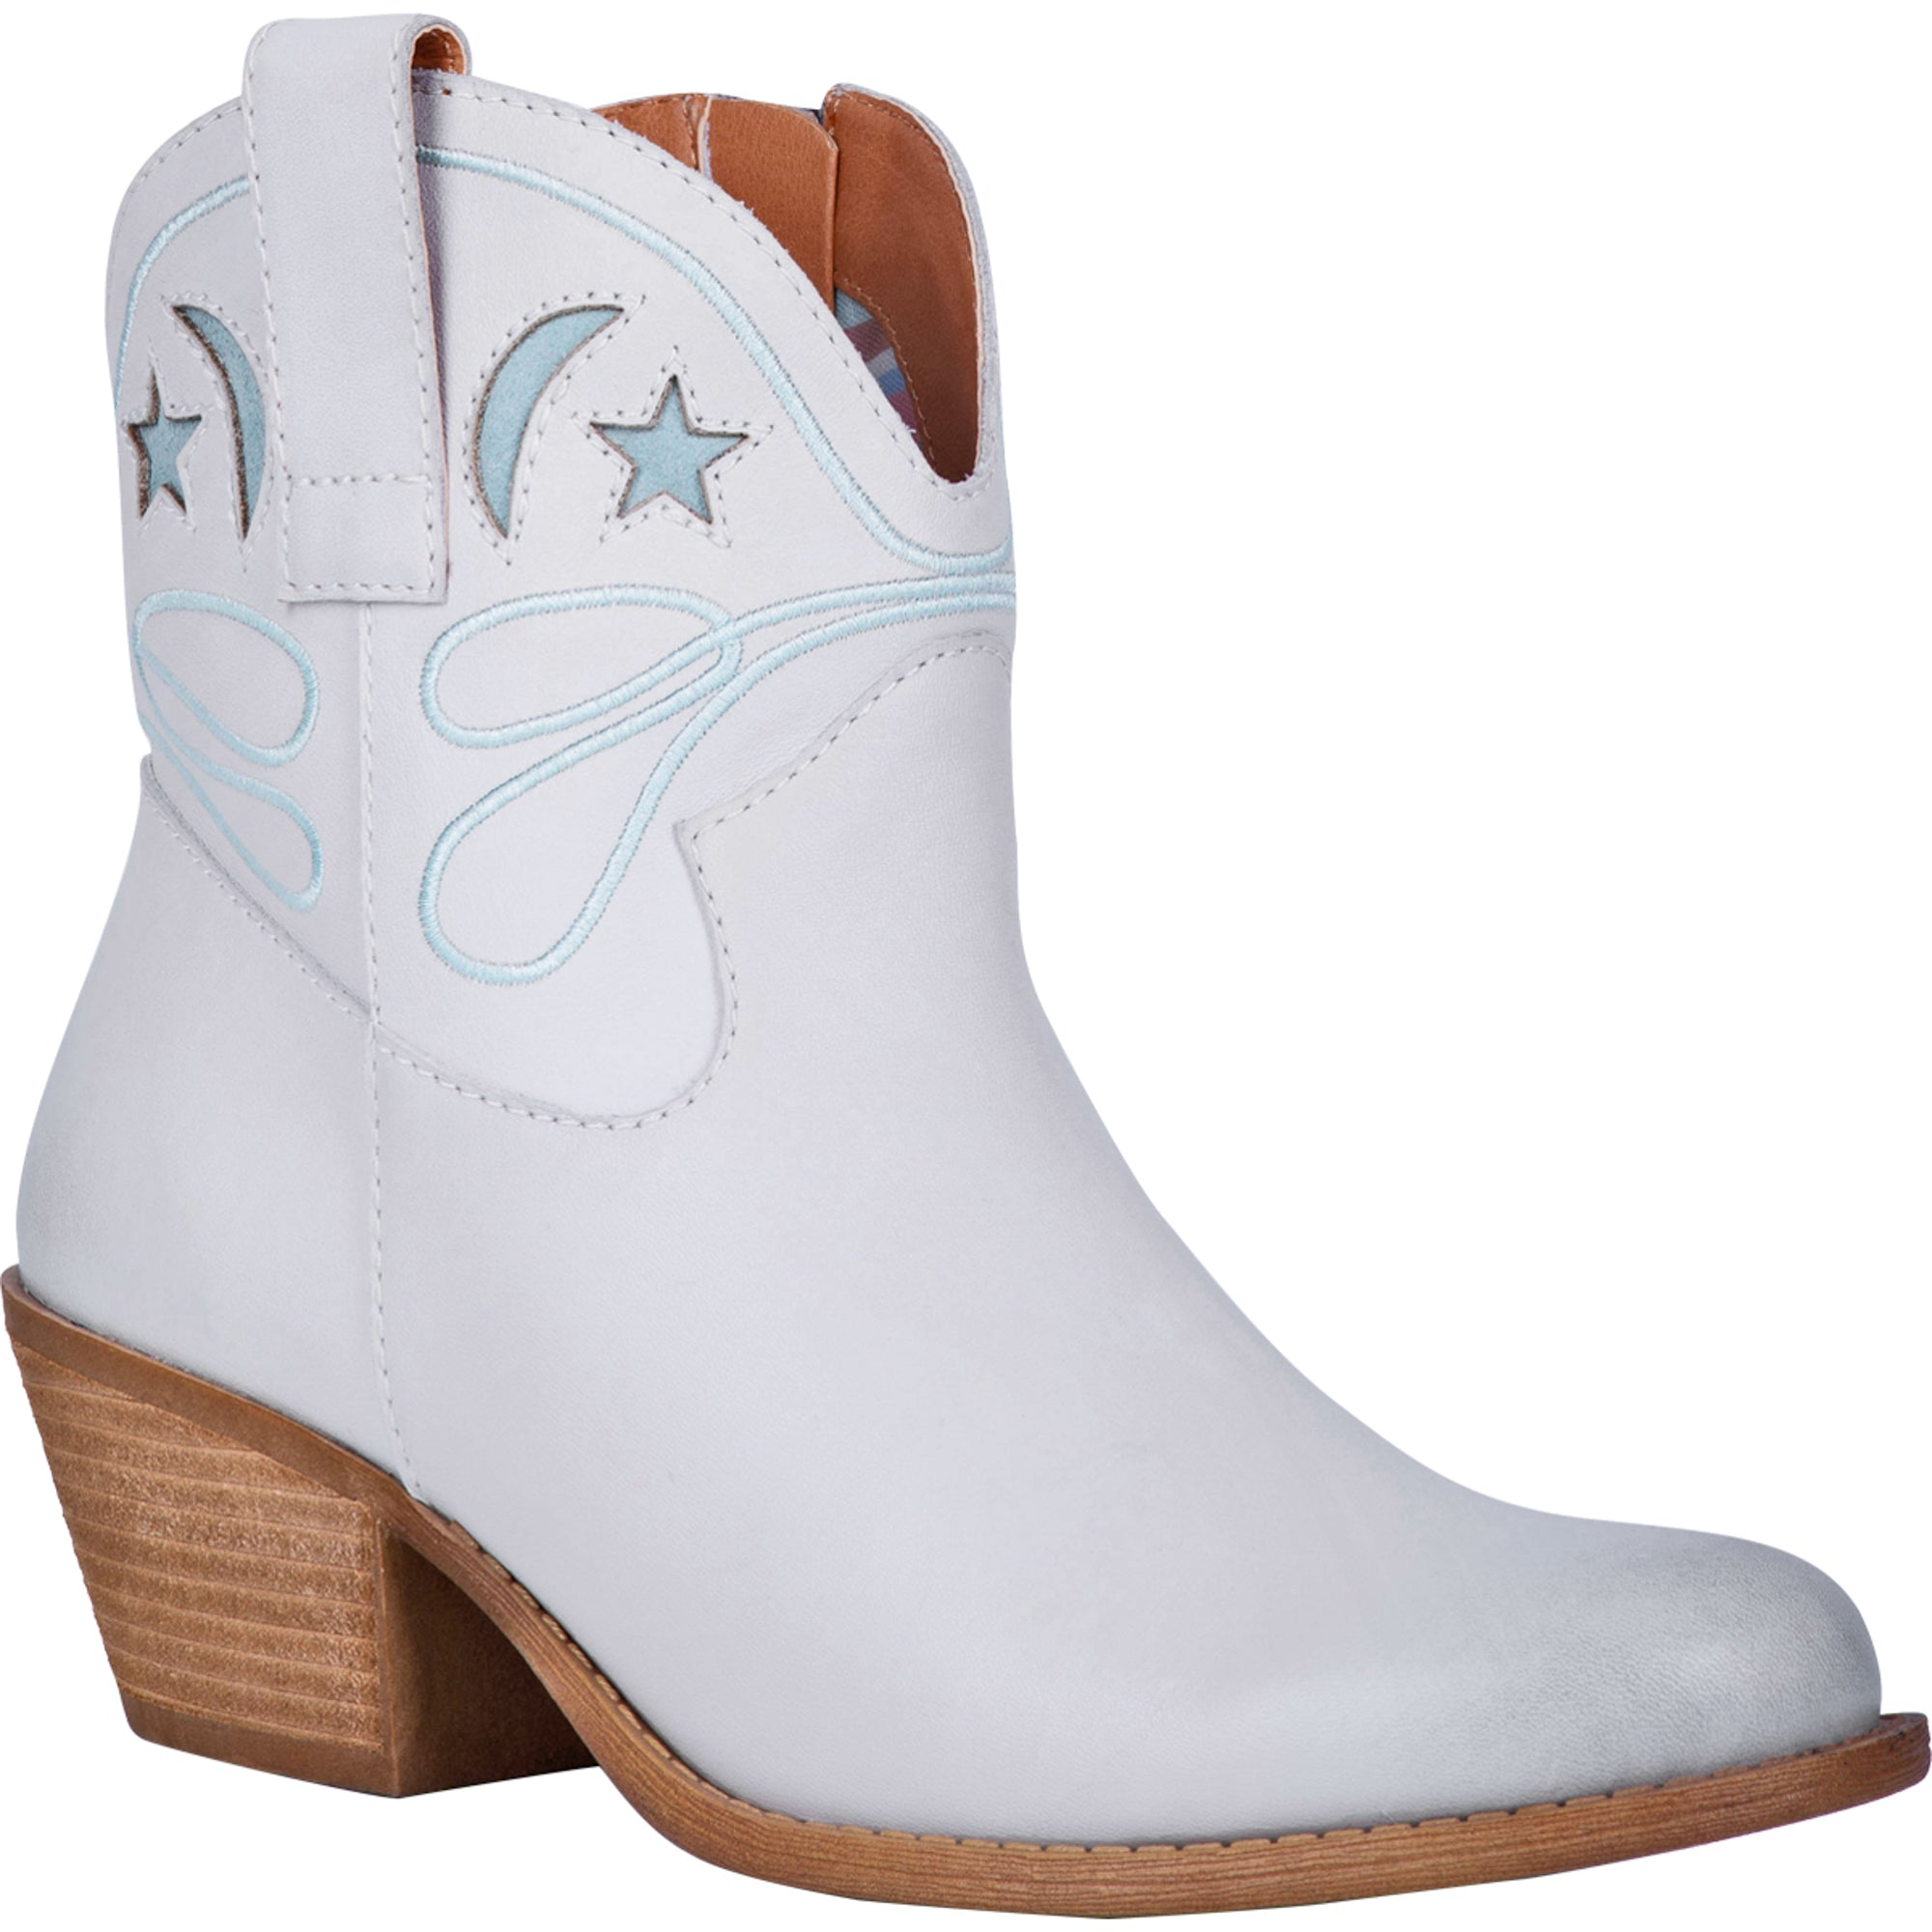 Dingo Womens Urban Cowgirl Ankle Boots